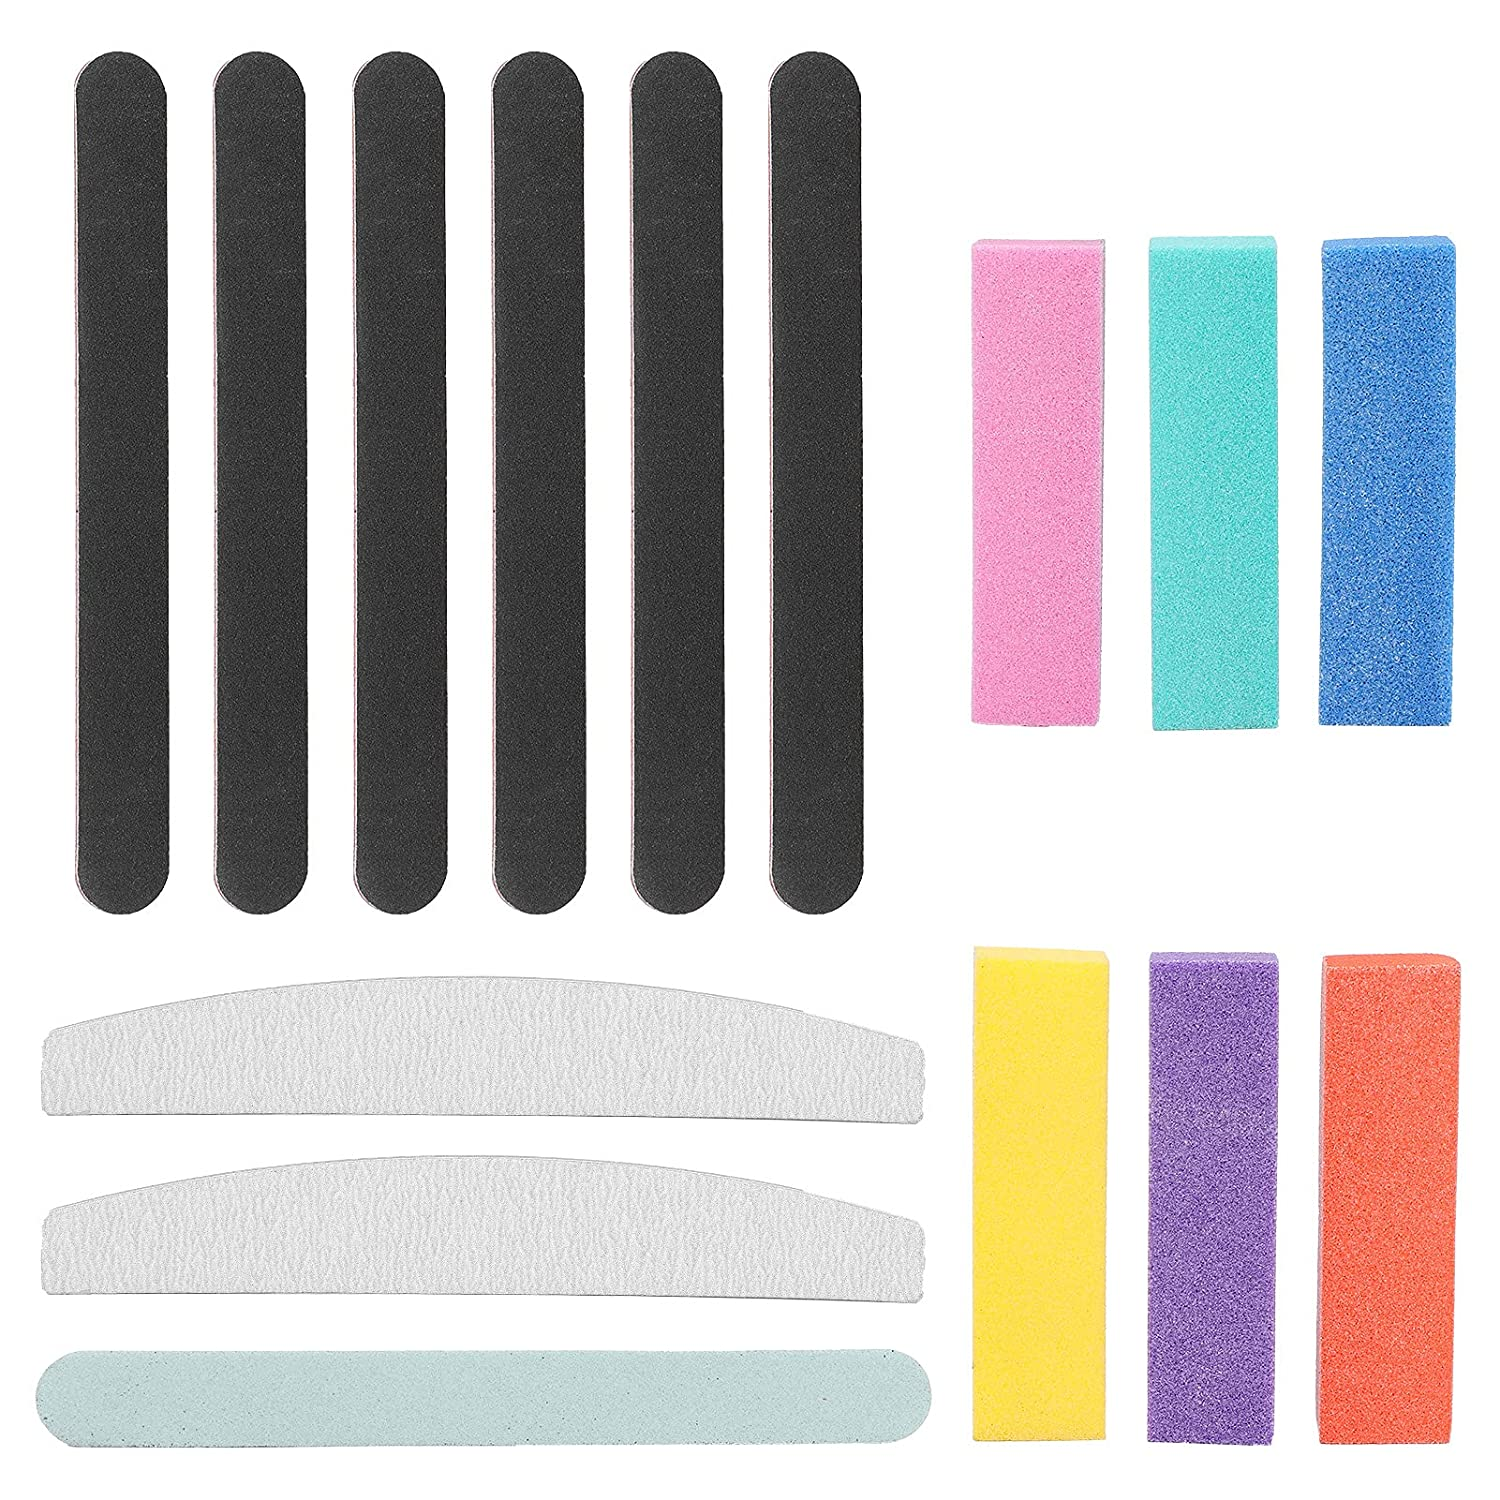 Emery Boards OFFicial site Nail File Max 41% OFF High Strong Elasticity for Art